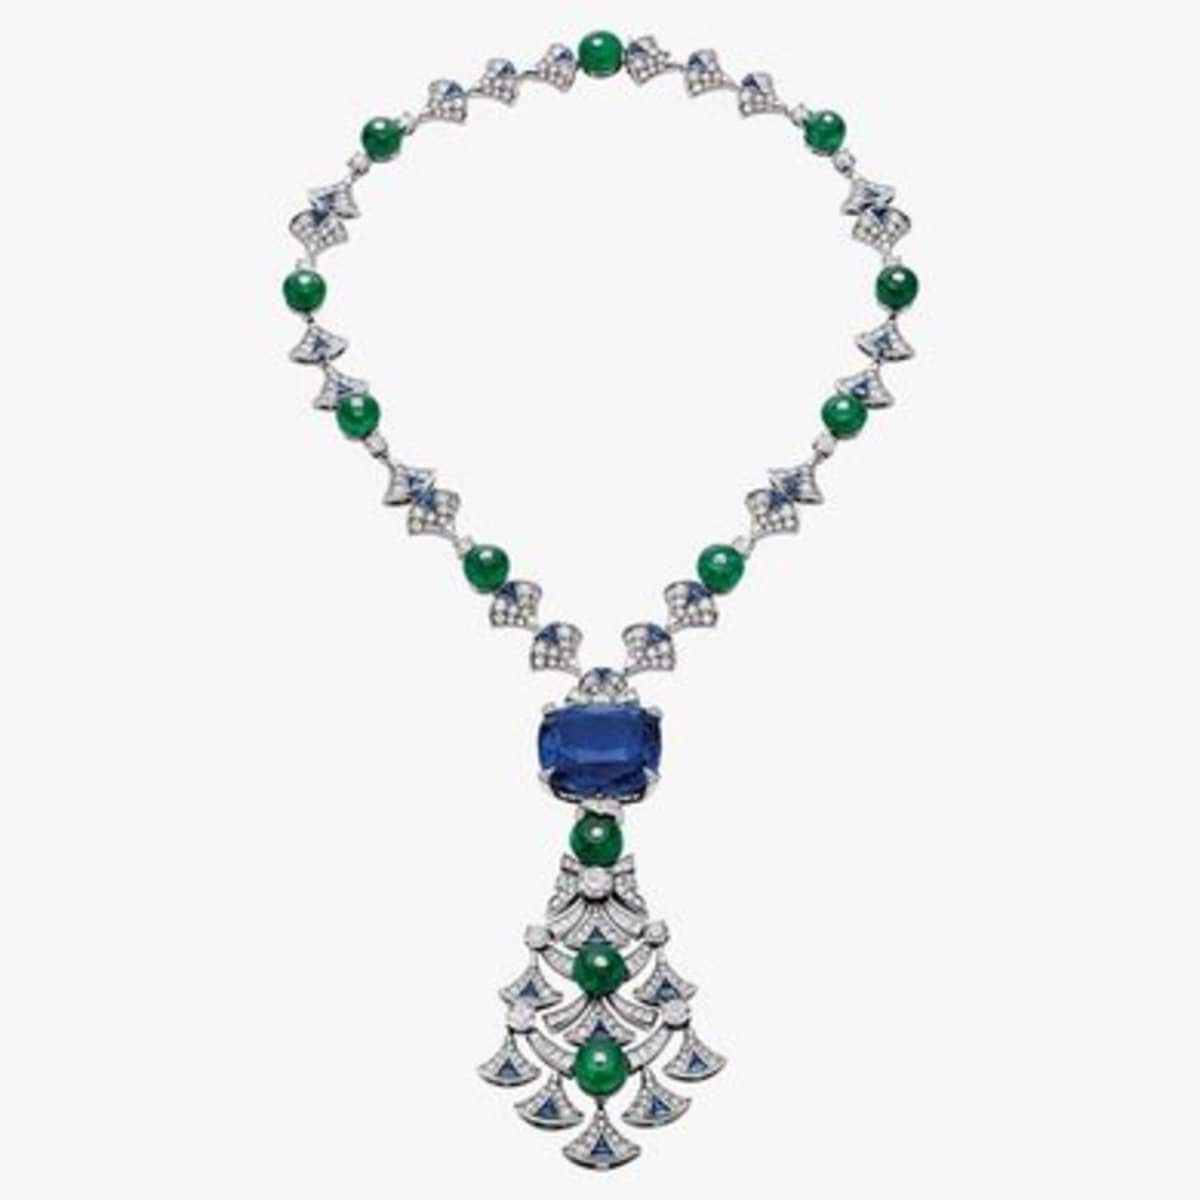 bulgari-couture-jewelry-wrapup